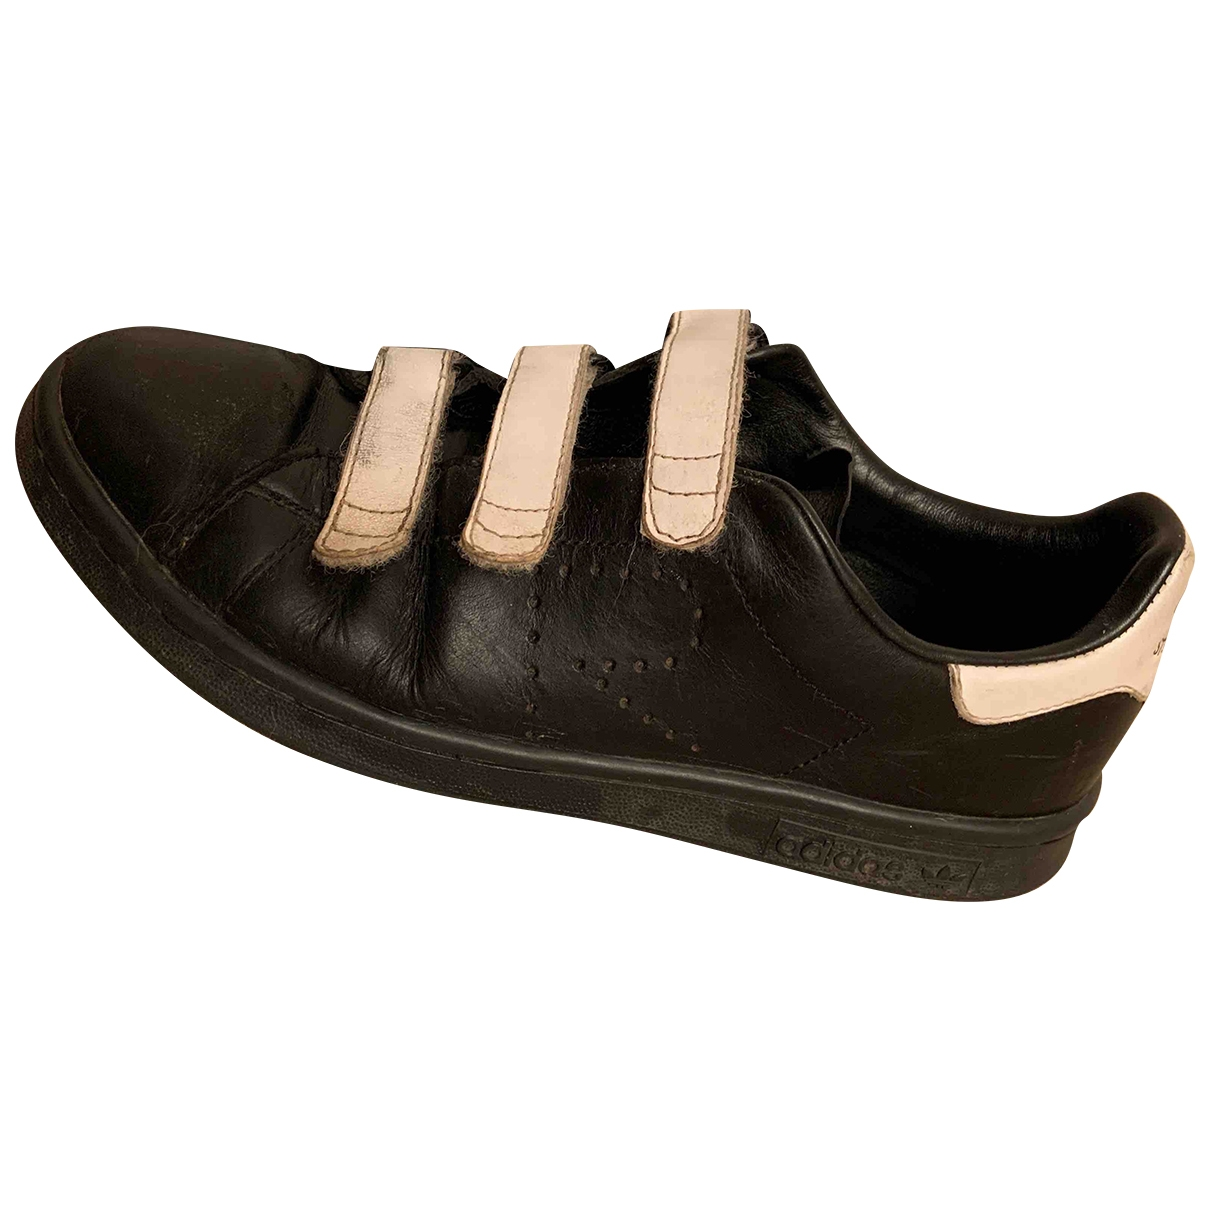 Adidas X Raf Simons Stan Smith Black Leather Trainers for Men 6 UK